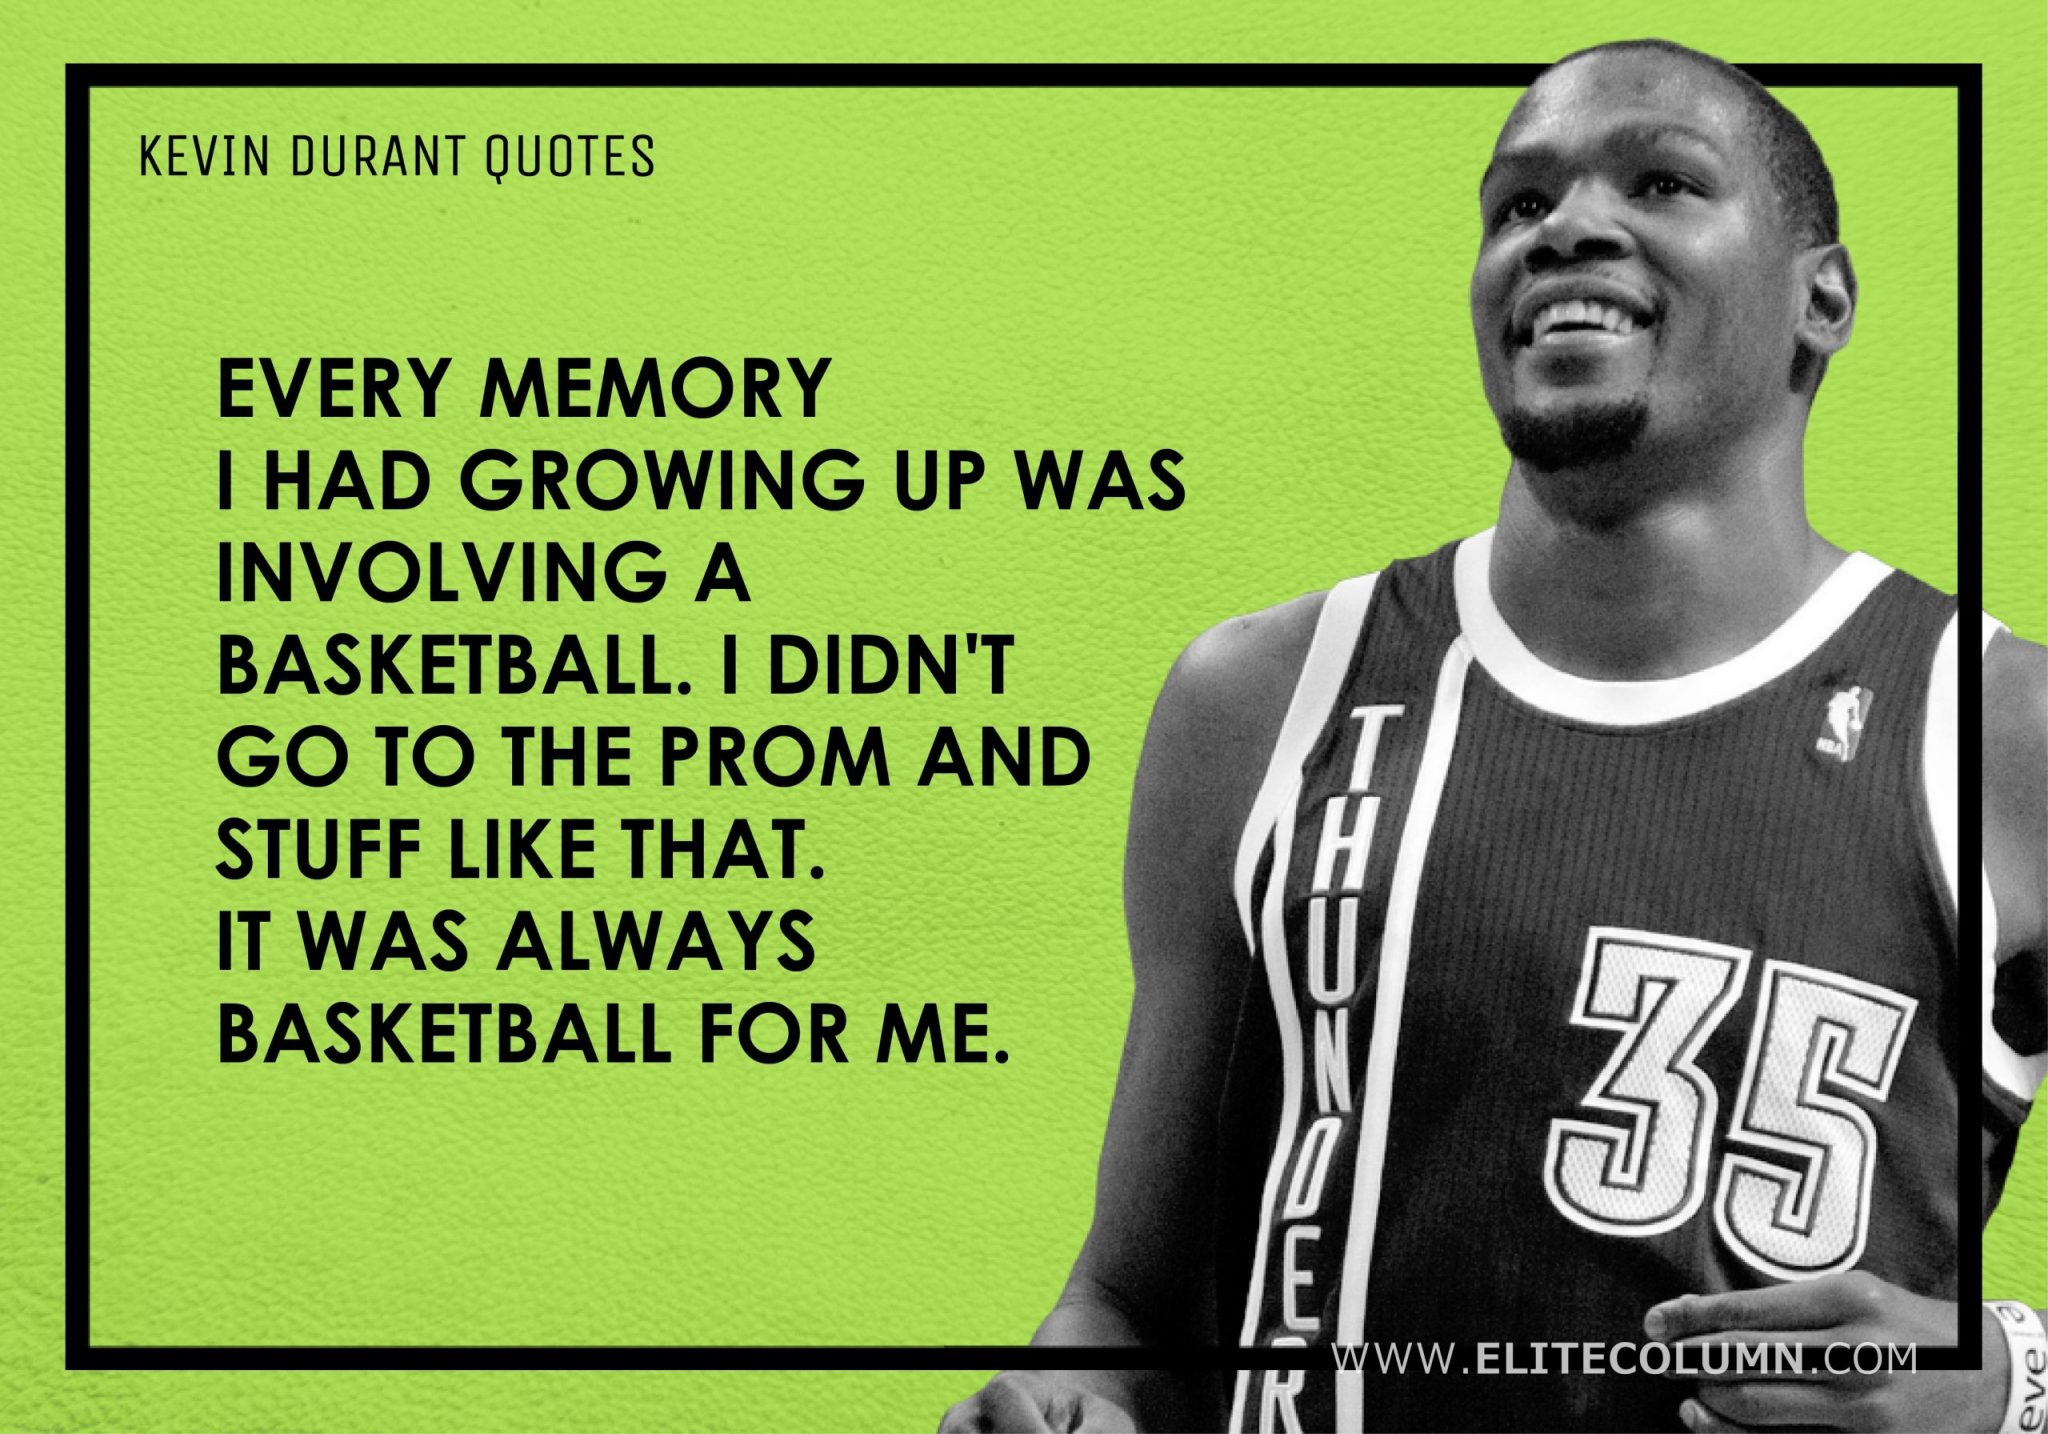 Kevin Durant Quotes (12)